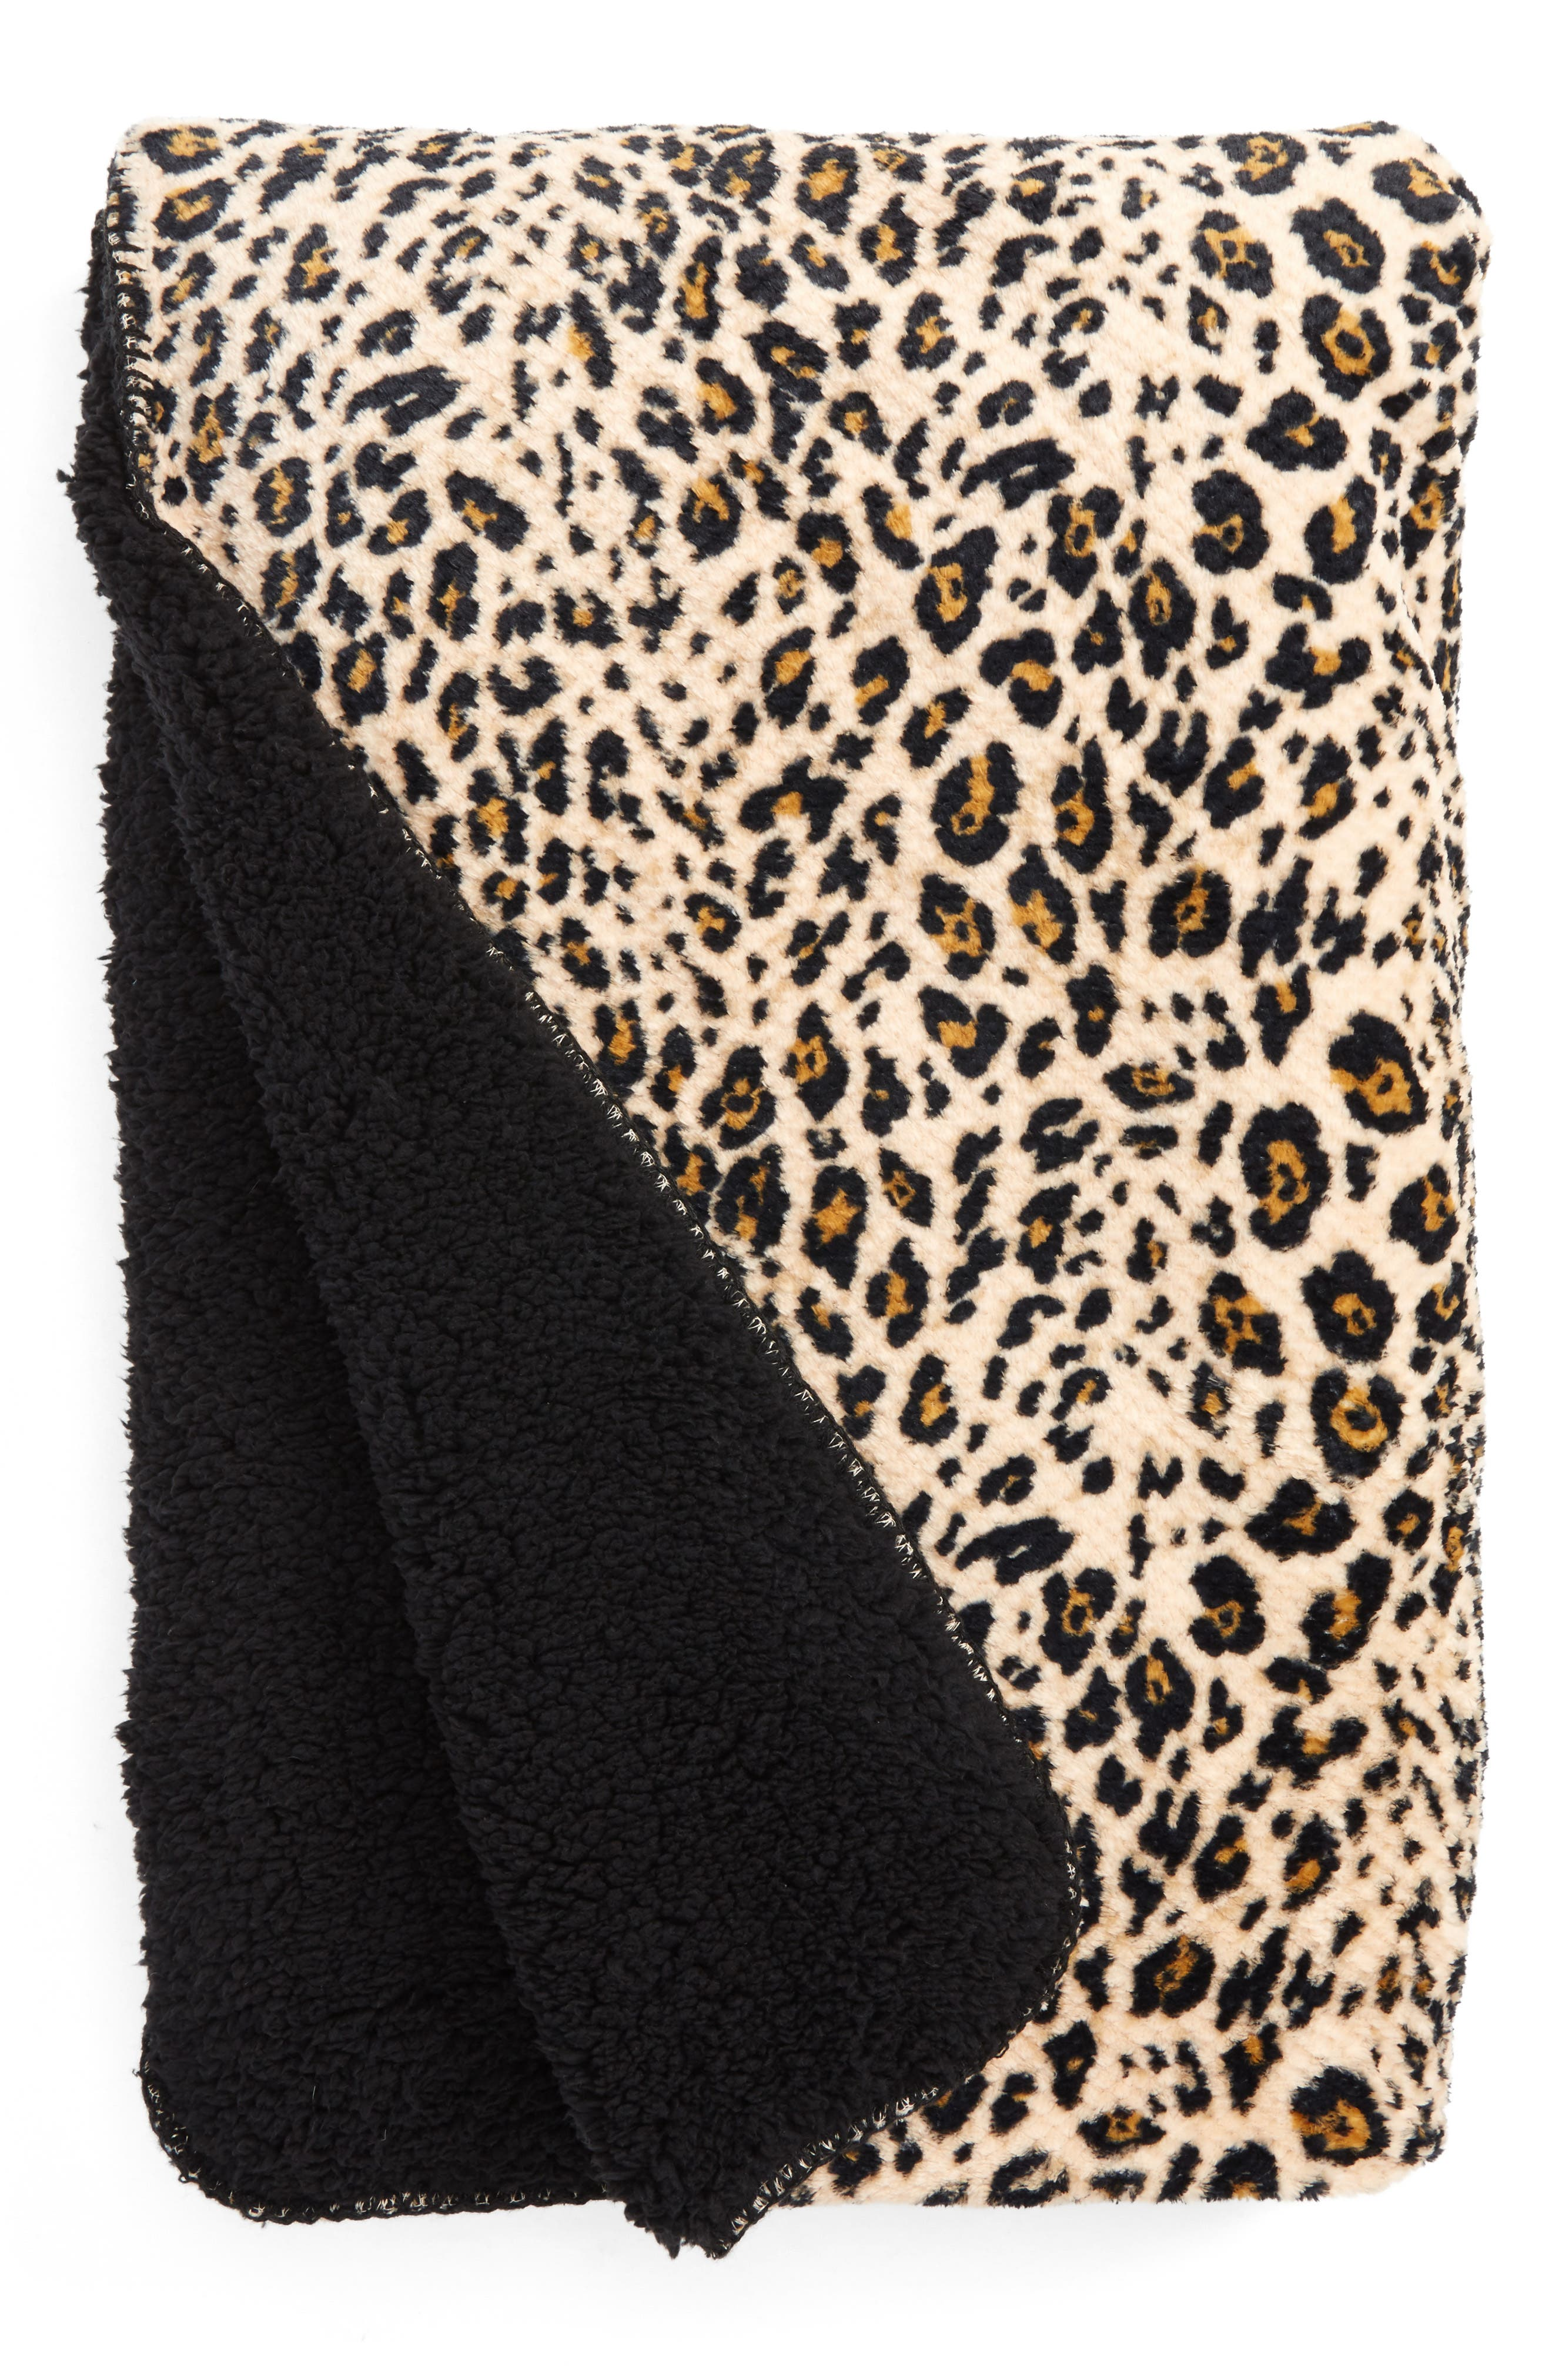 Alternate Image 1 Selected - PJ Salvage Leopard Print Faux Shearling Blanket